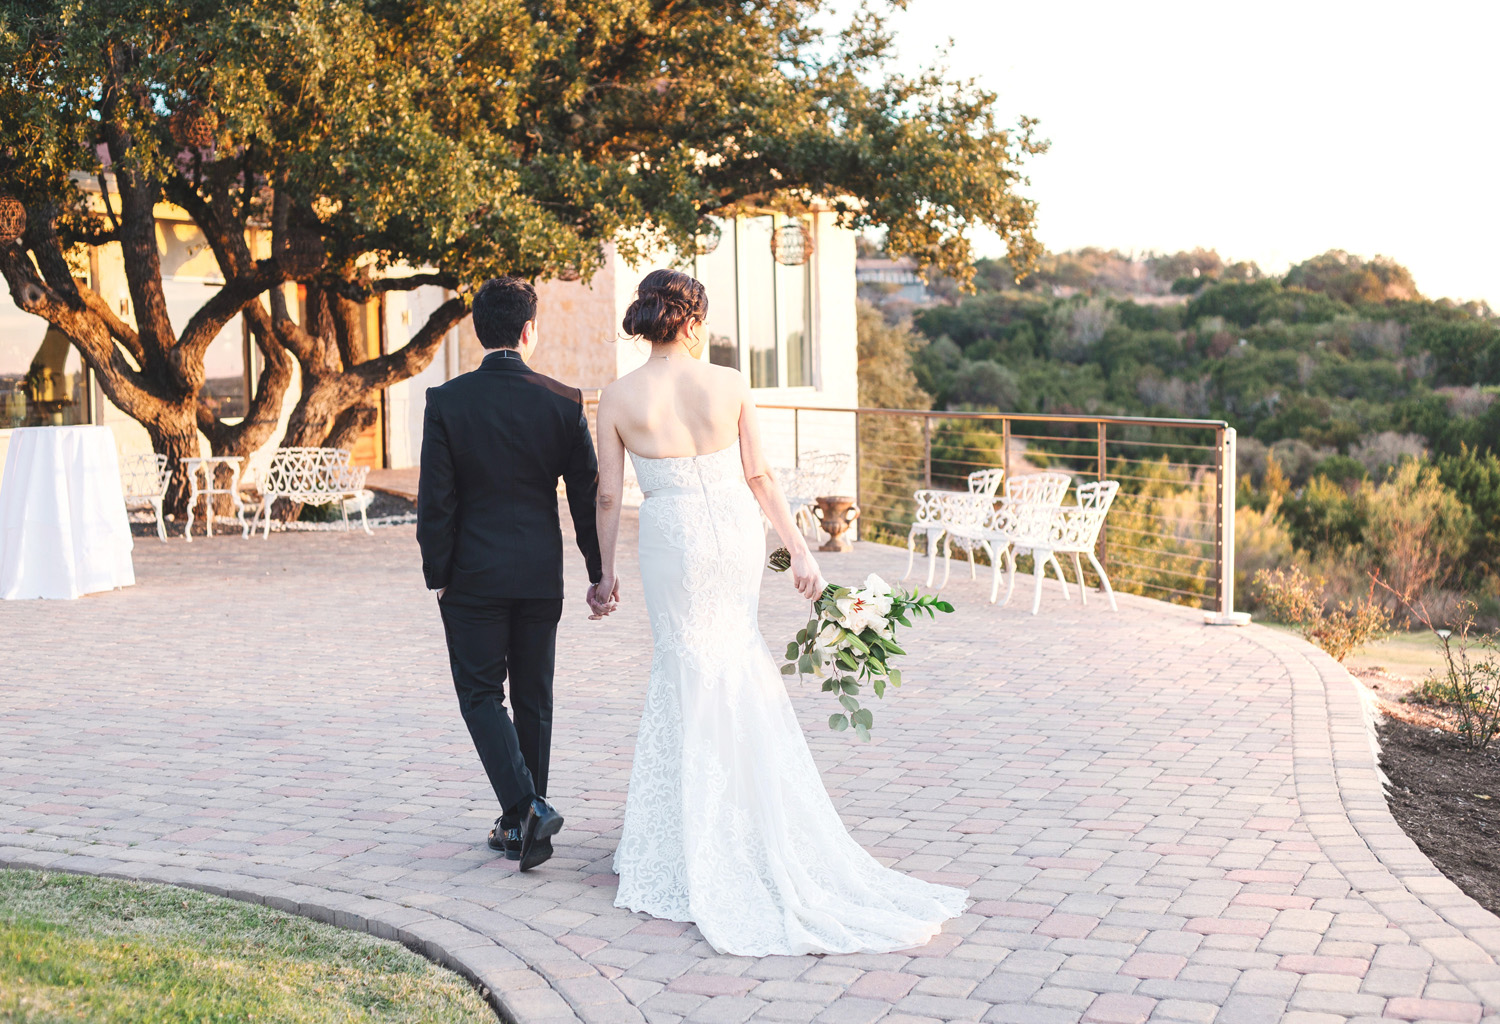 Austin Texas sunset wedding by Monika Normand Photography